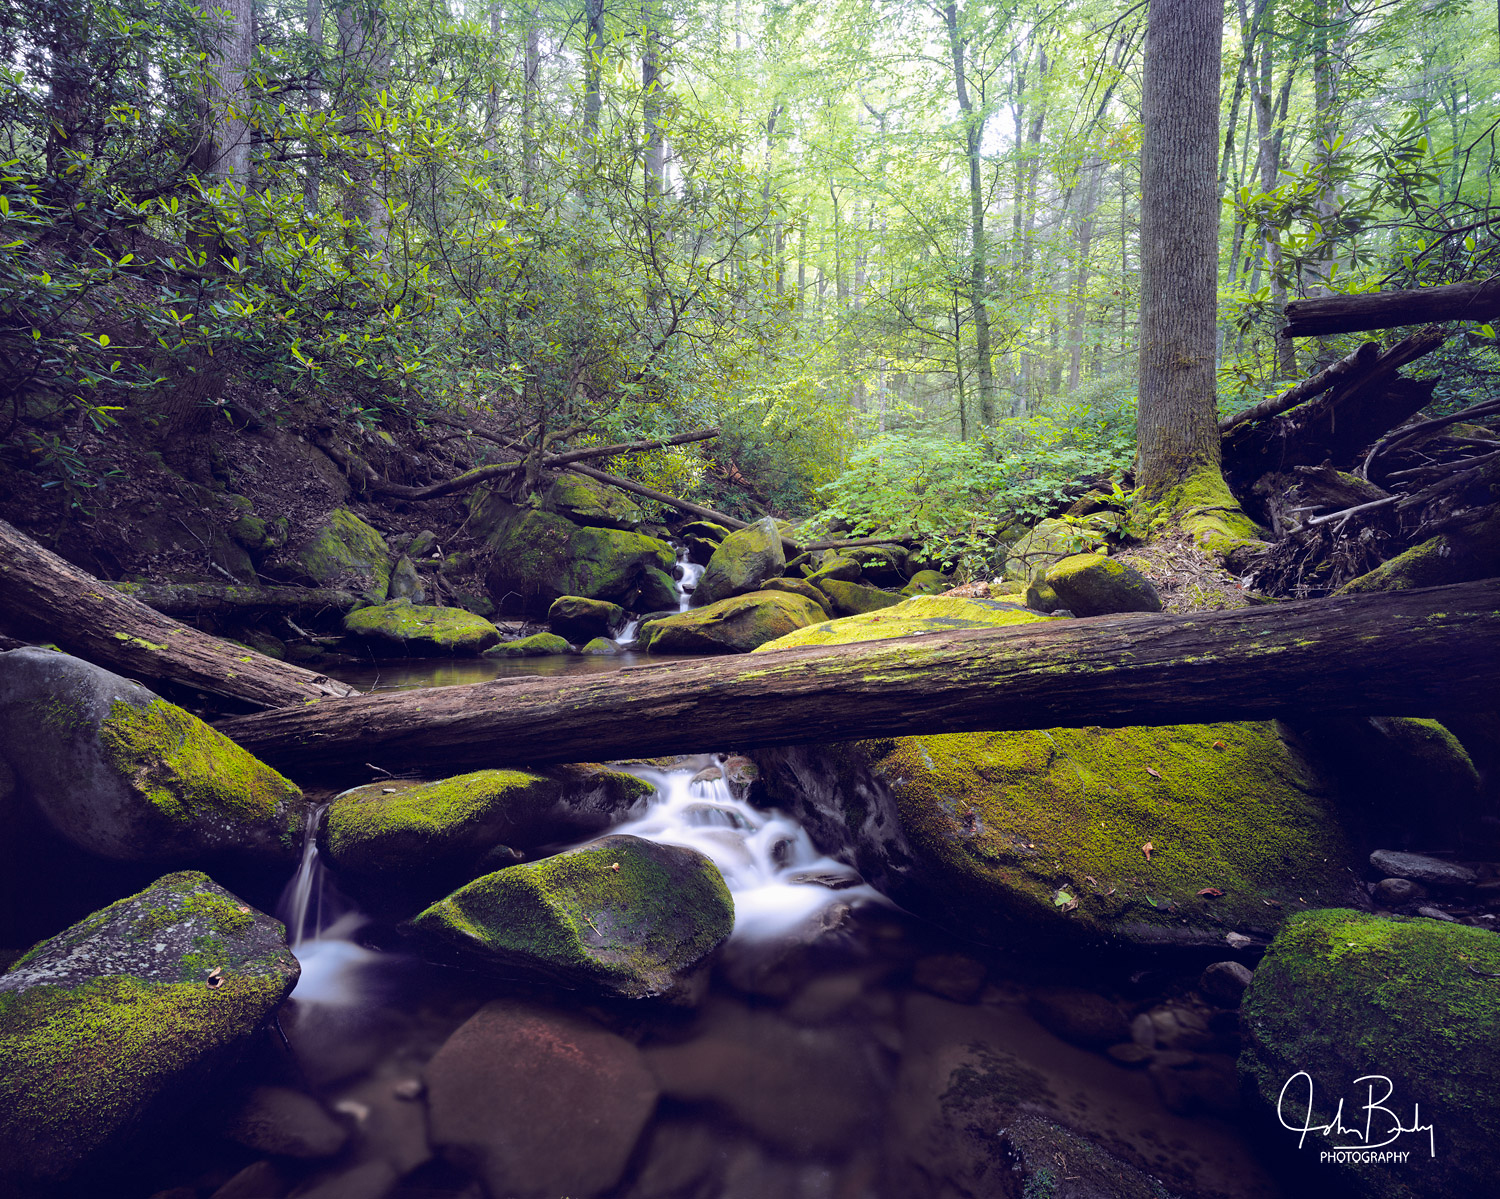 Cosby Creek is located in the Smoky Mountain National Park, Tennessee. This is an example of one of the many beautiful mountain...